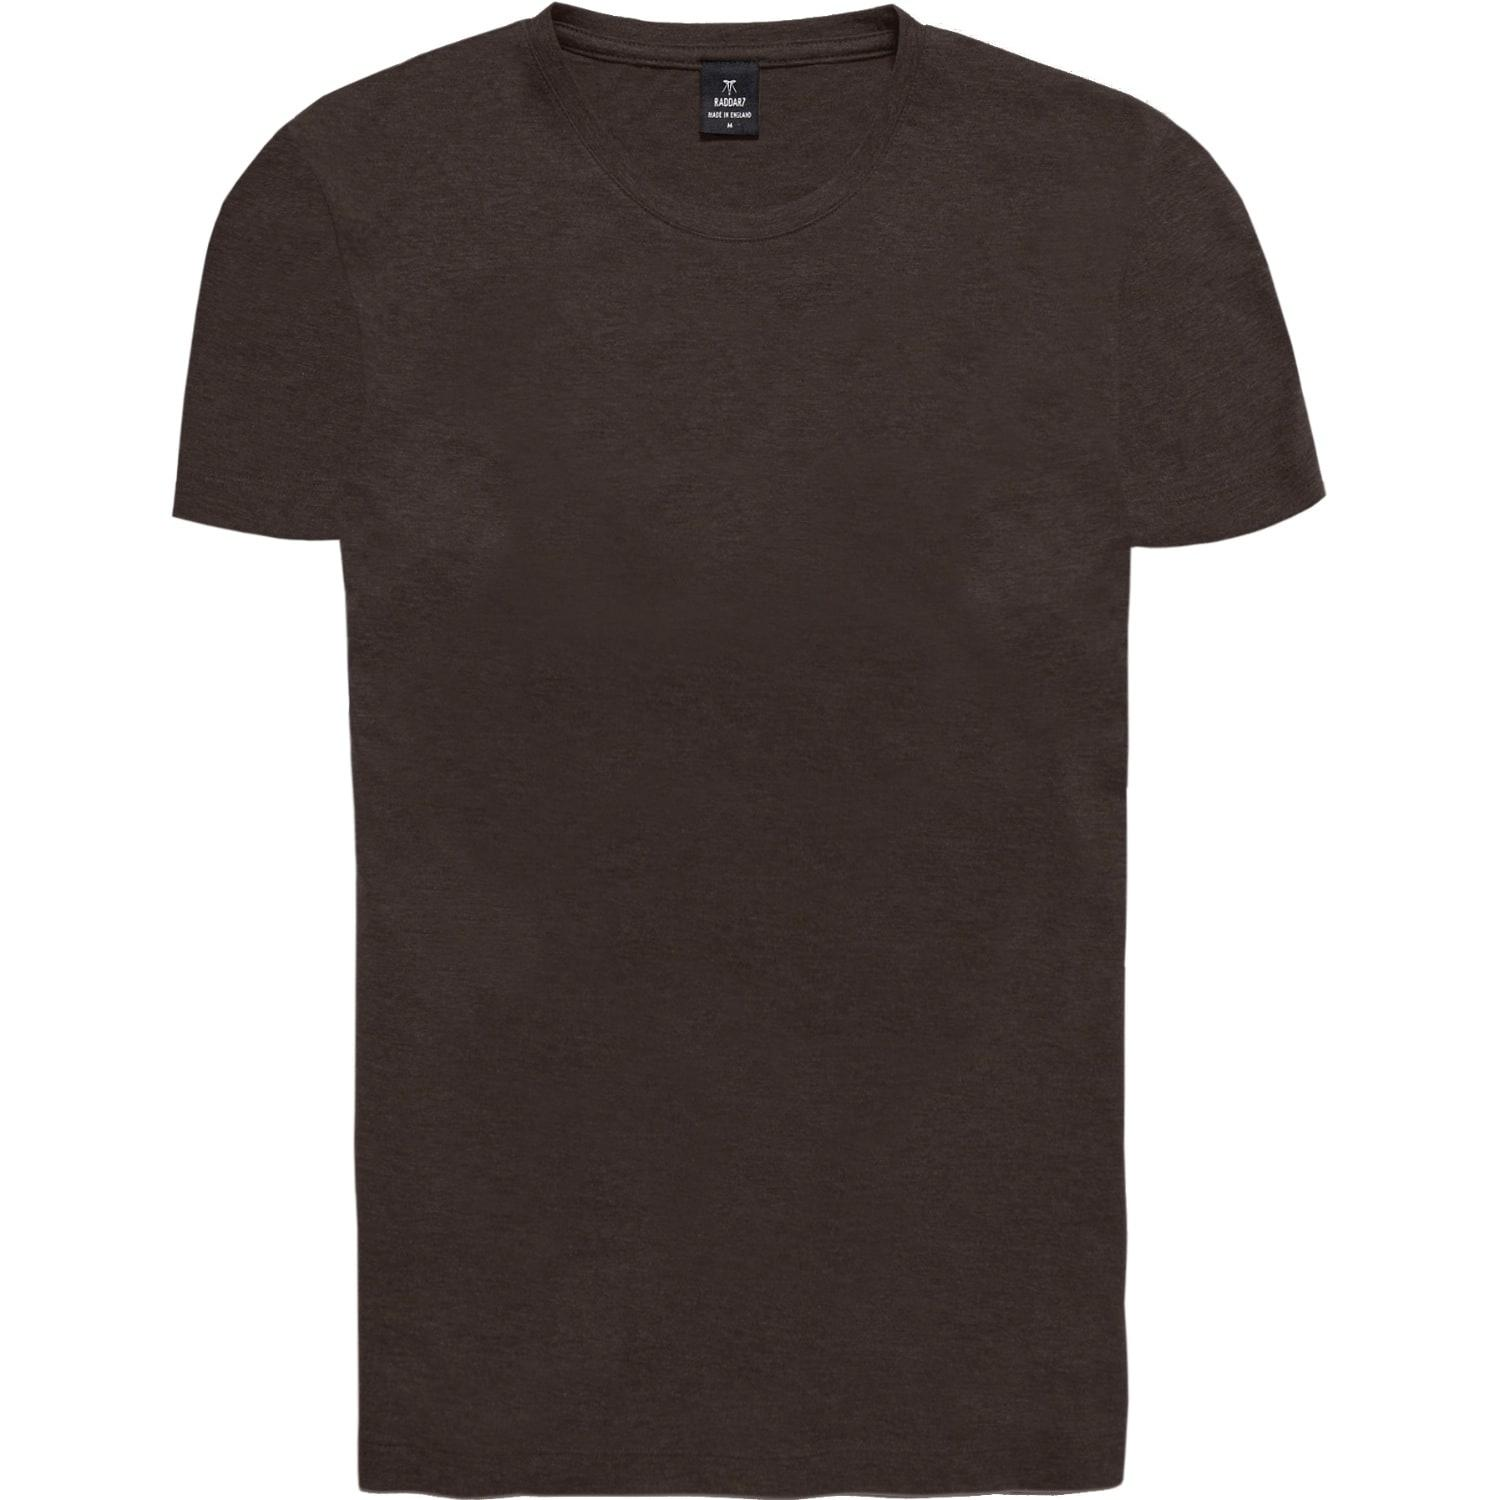 Raddar7 casual luxe sport dark brown crew t shirt in brown for Black brown mens shirts